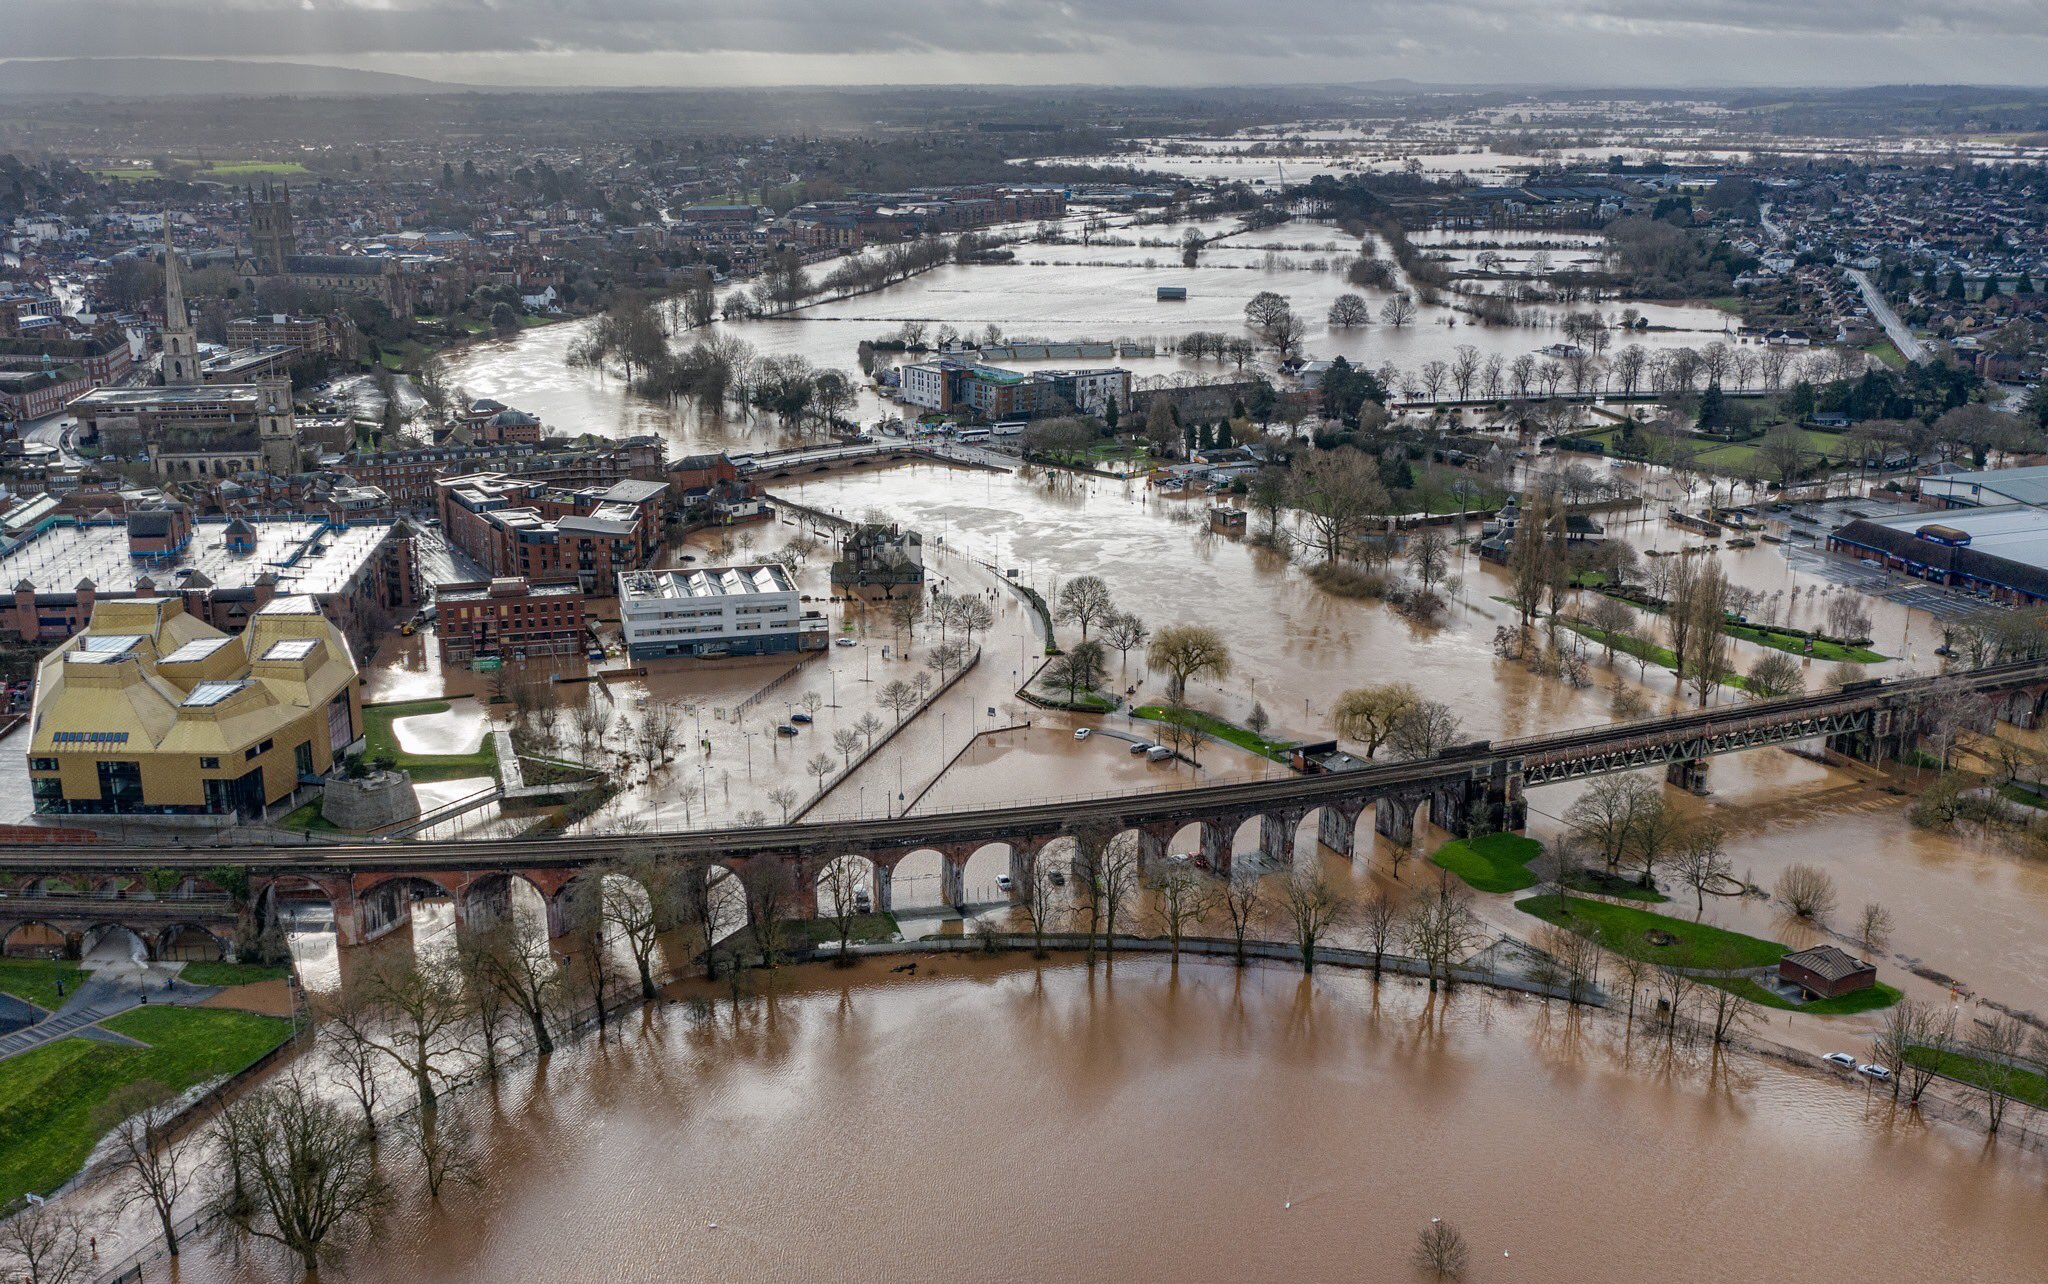 drone photo of flooding in Worcester due to storm Dennis